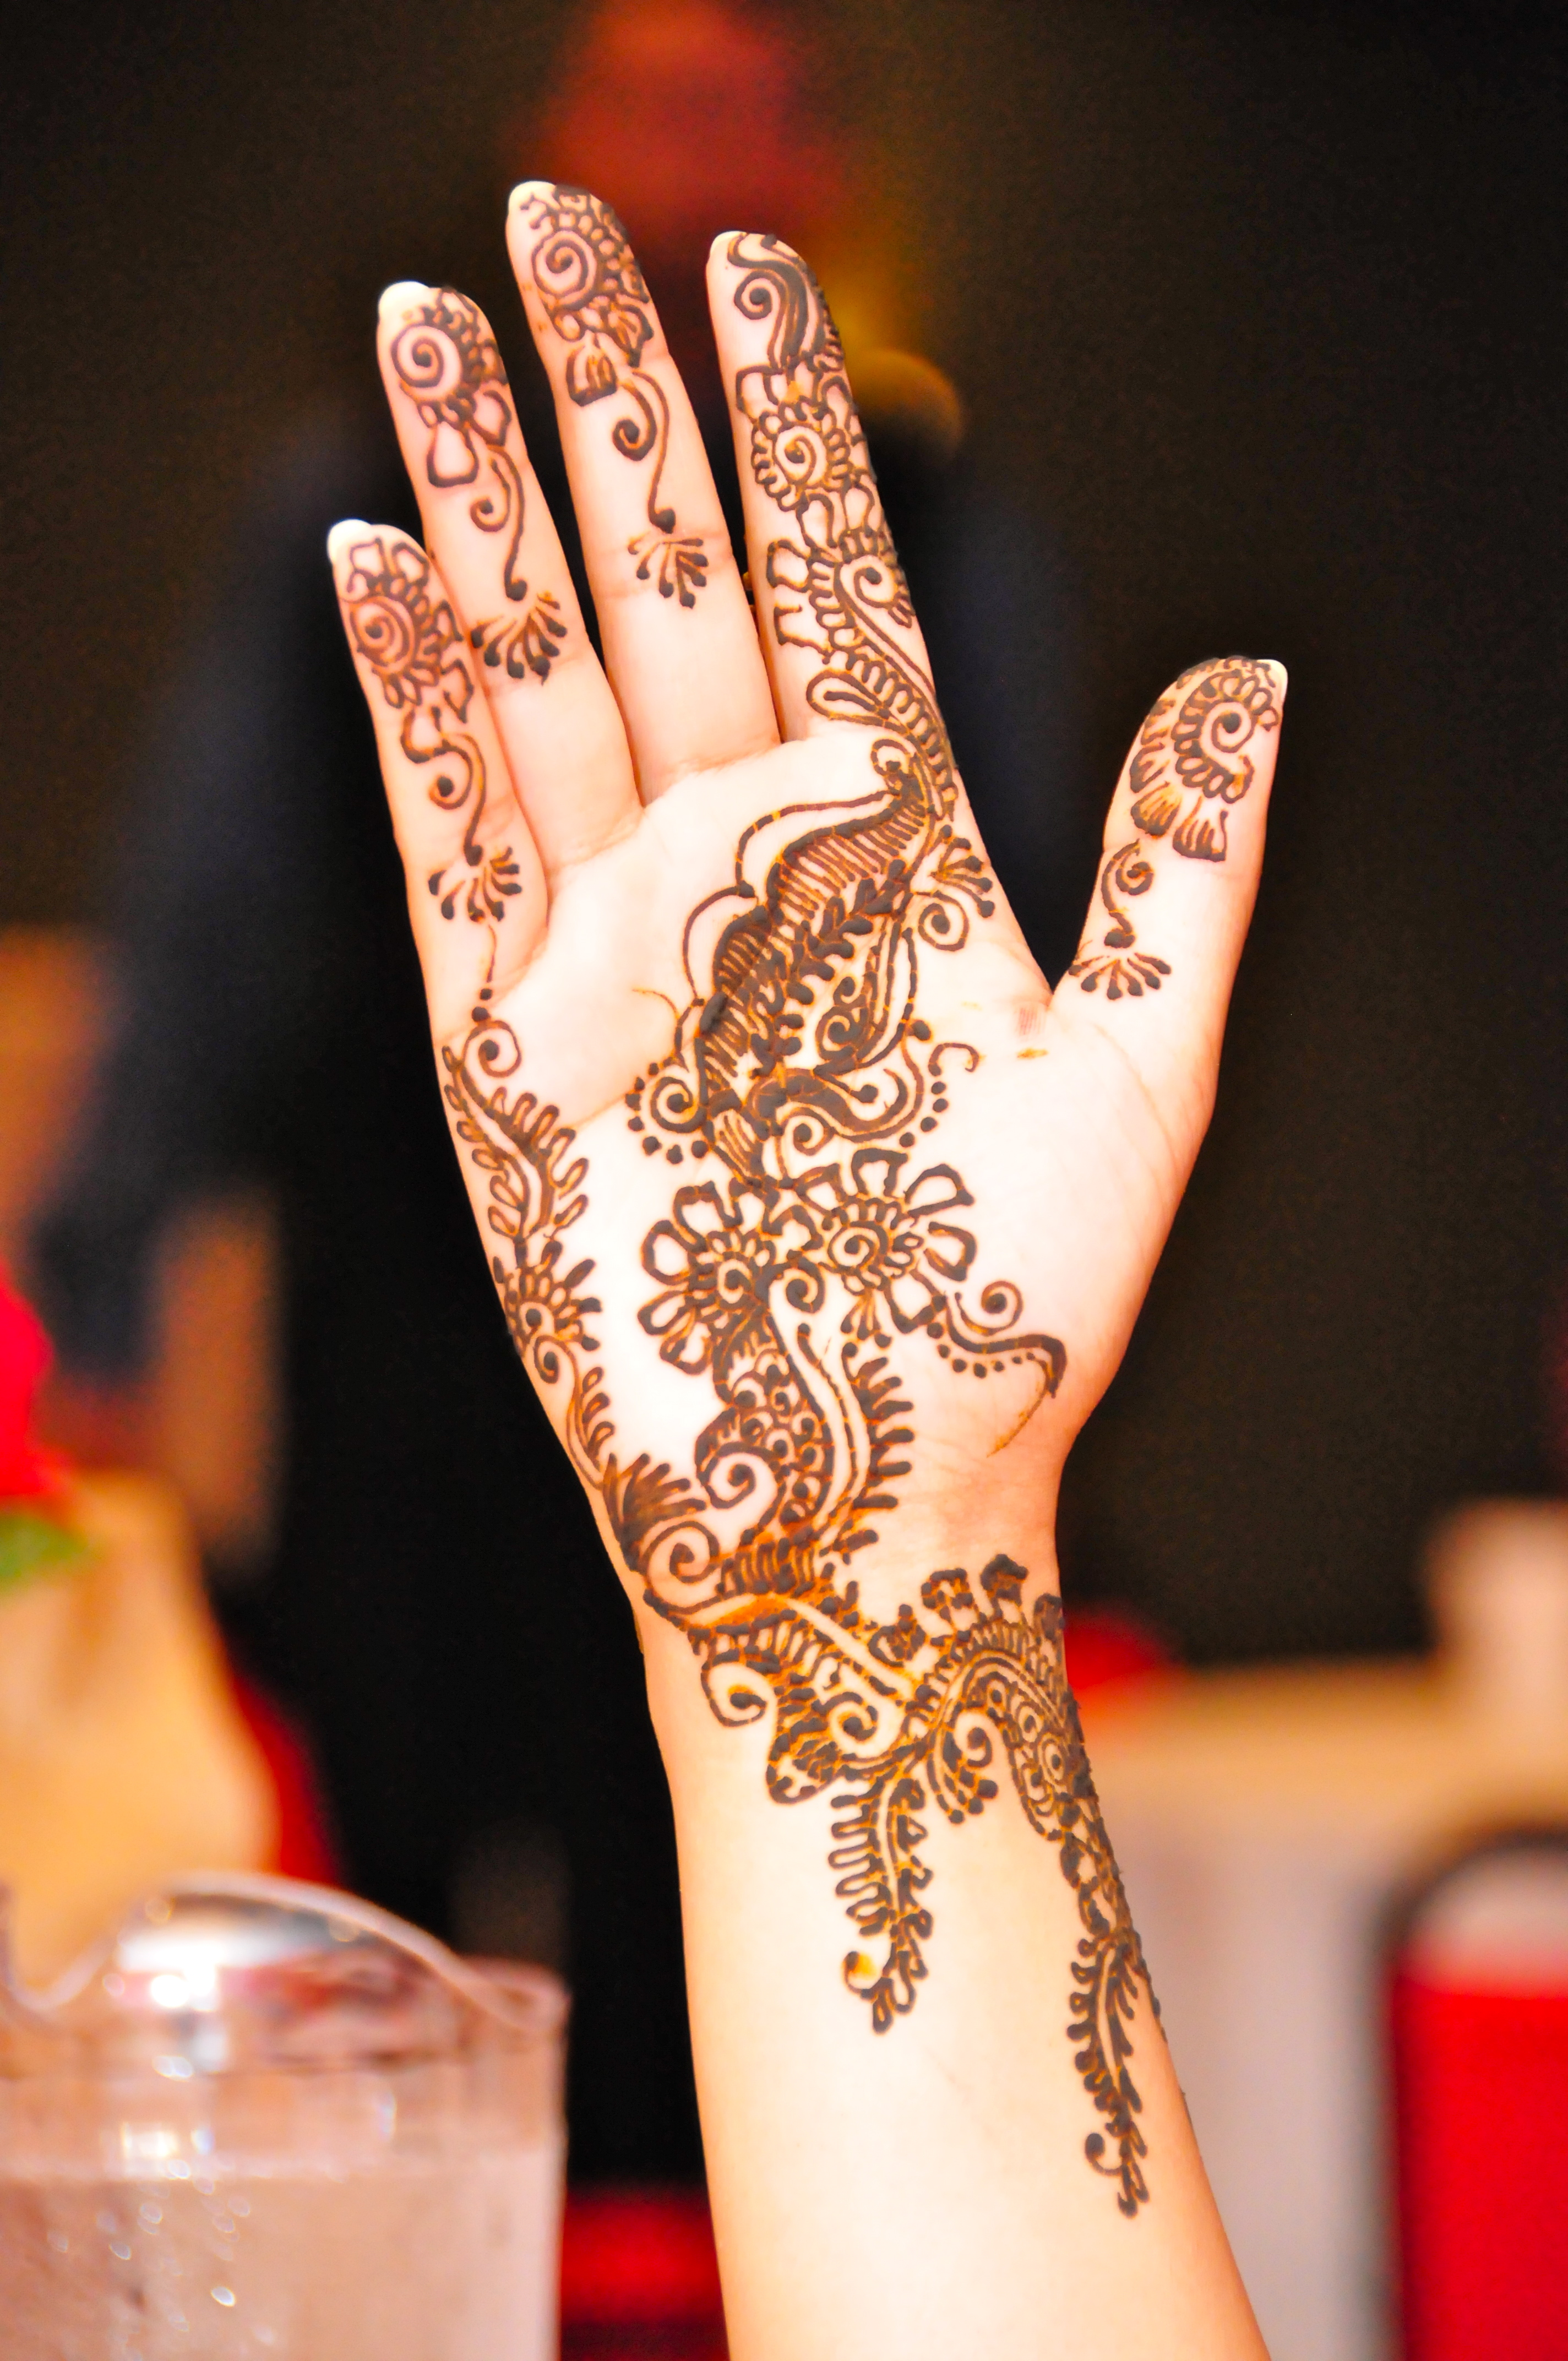 Amazing Henna Tattoo Designs For The Hand